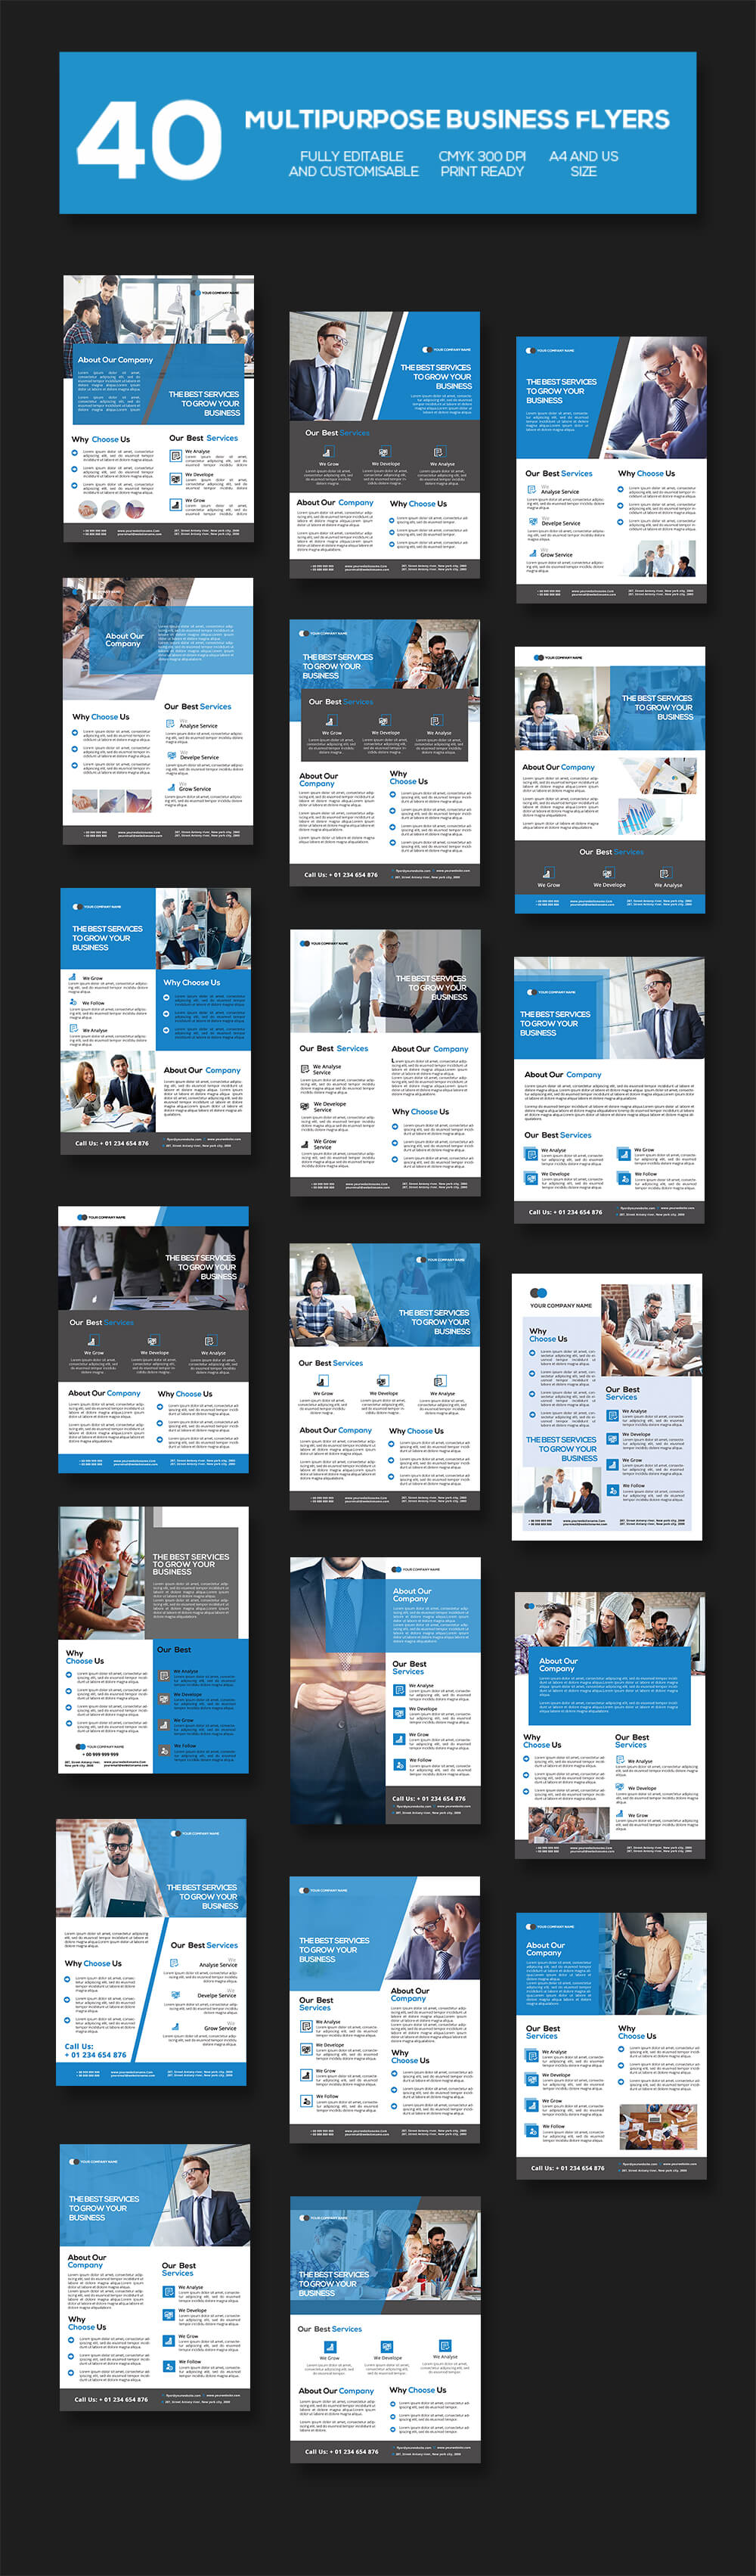 1400 Multipurpose Business Flyer Templates - $15 [extended license] - PREVIEW 1